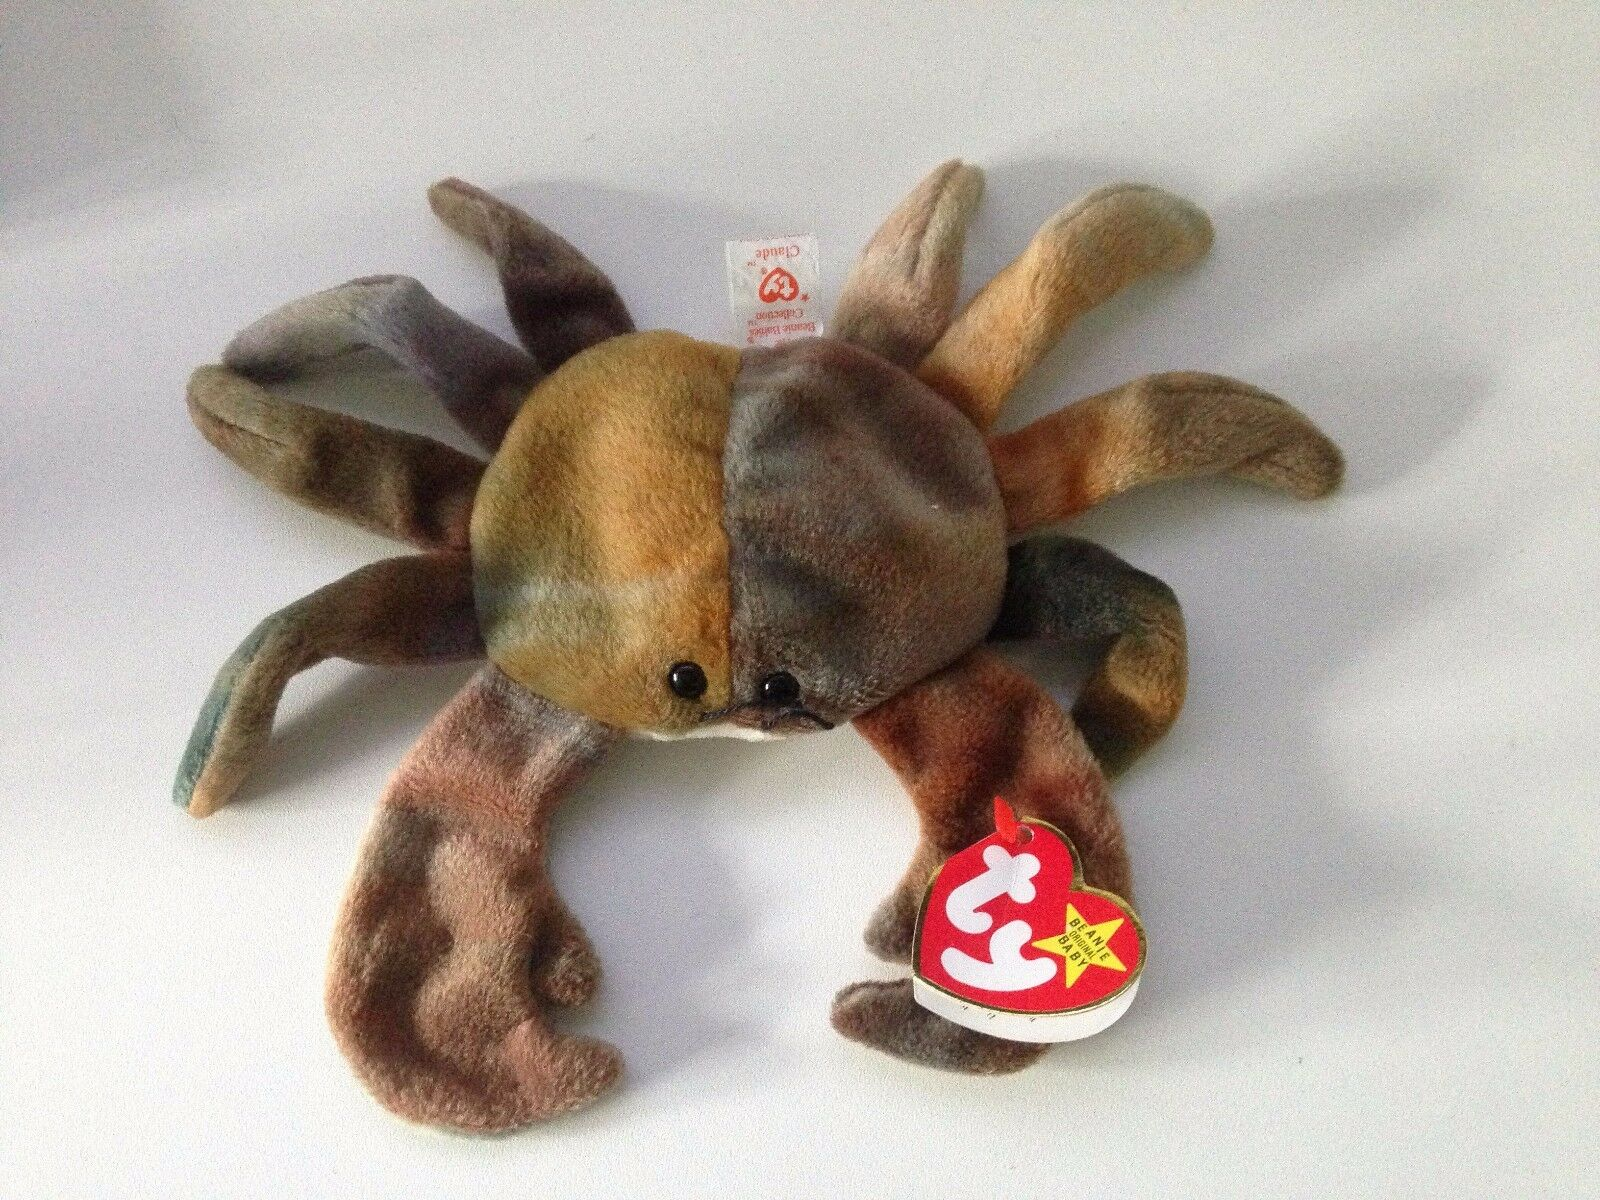 ... TY Beanie Babies - Claude The The Claude Crab 1996 PVC Pellets Very Rare  with Tag 8b3a07e8ec62